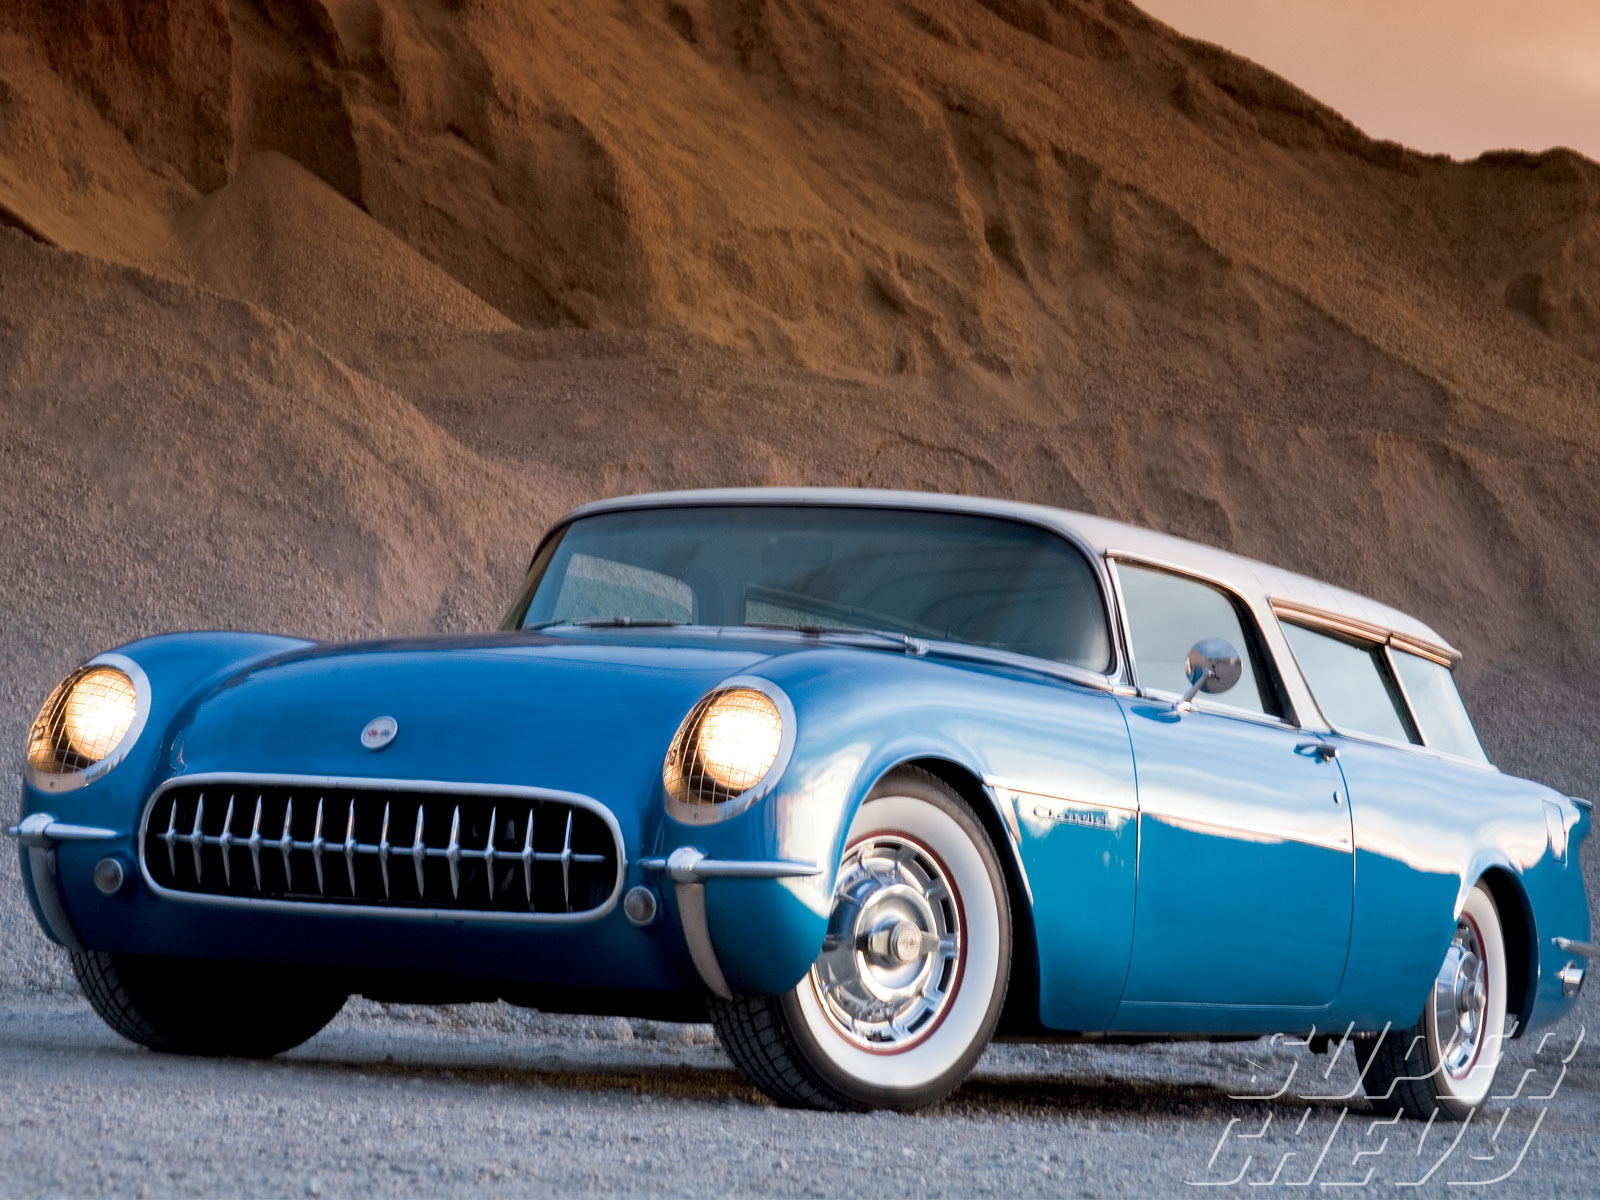 1956 Chevy Corvette Nomad - The Waldorf Nomad